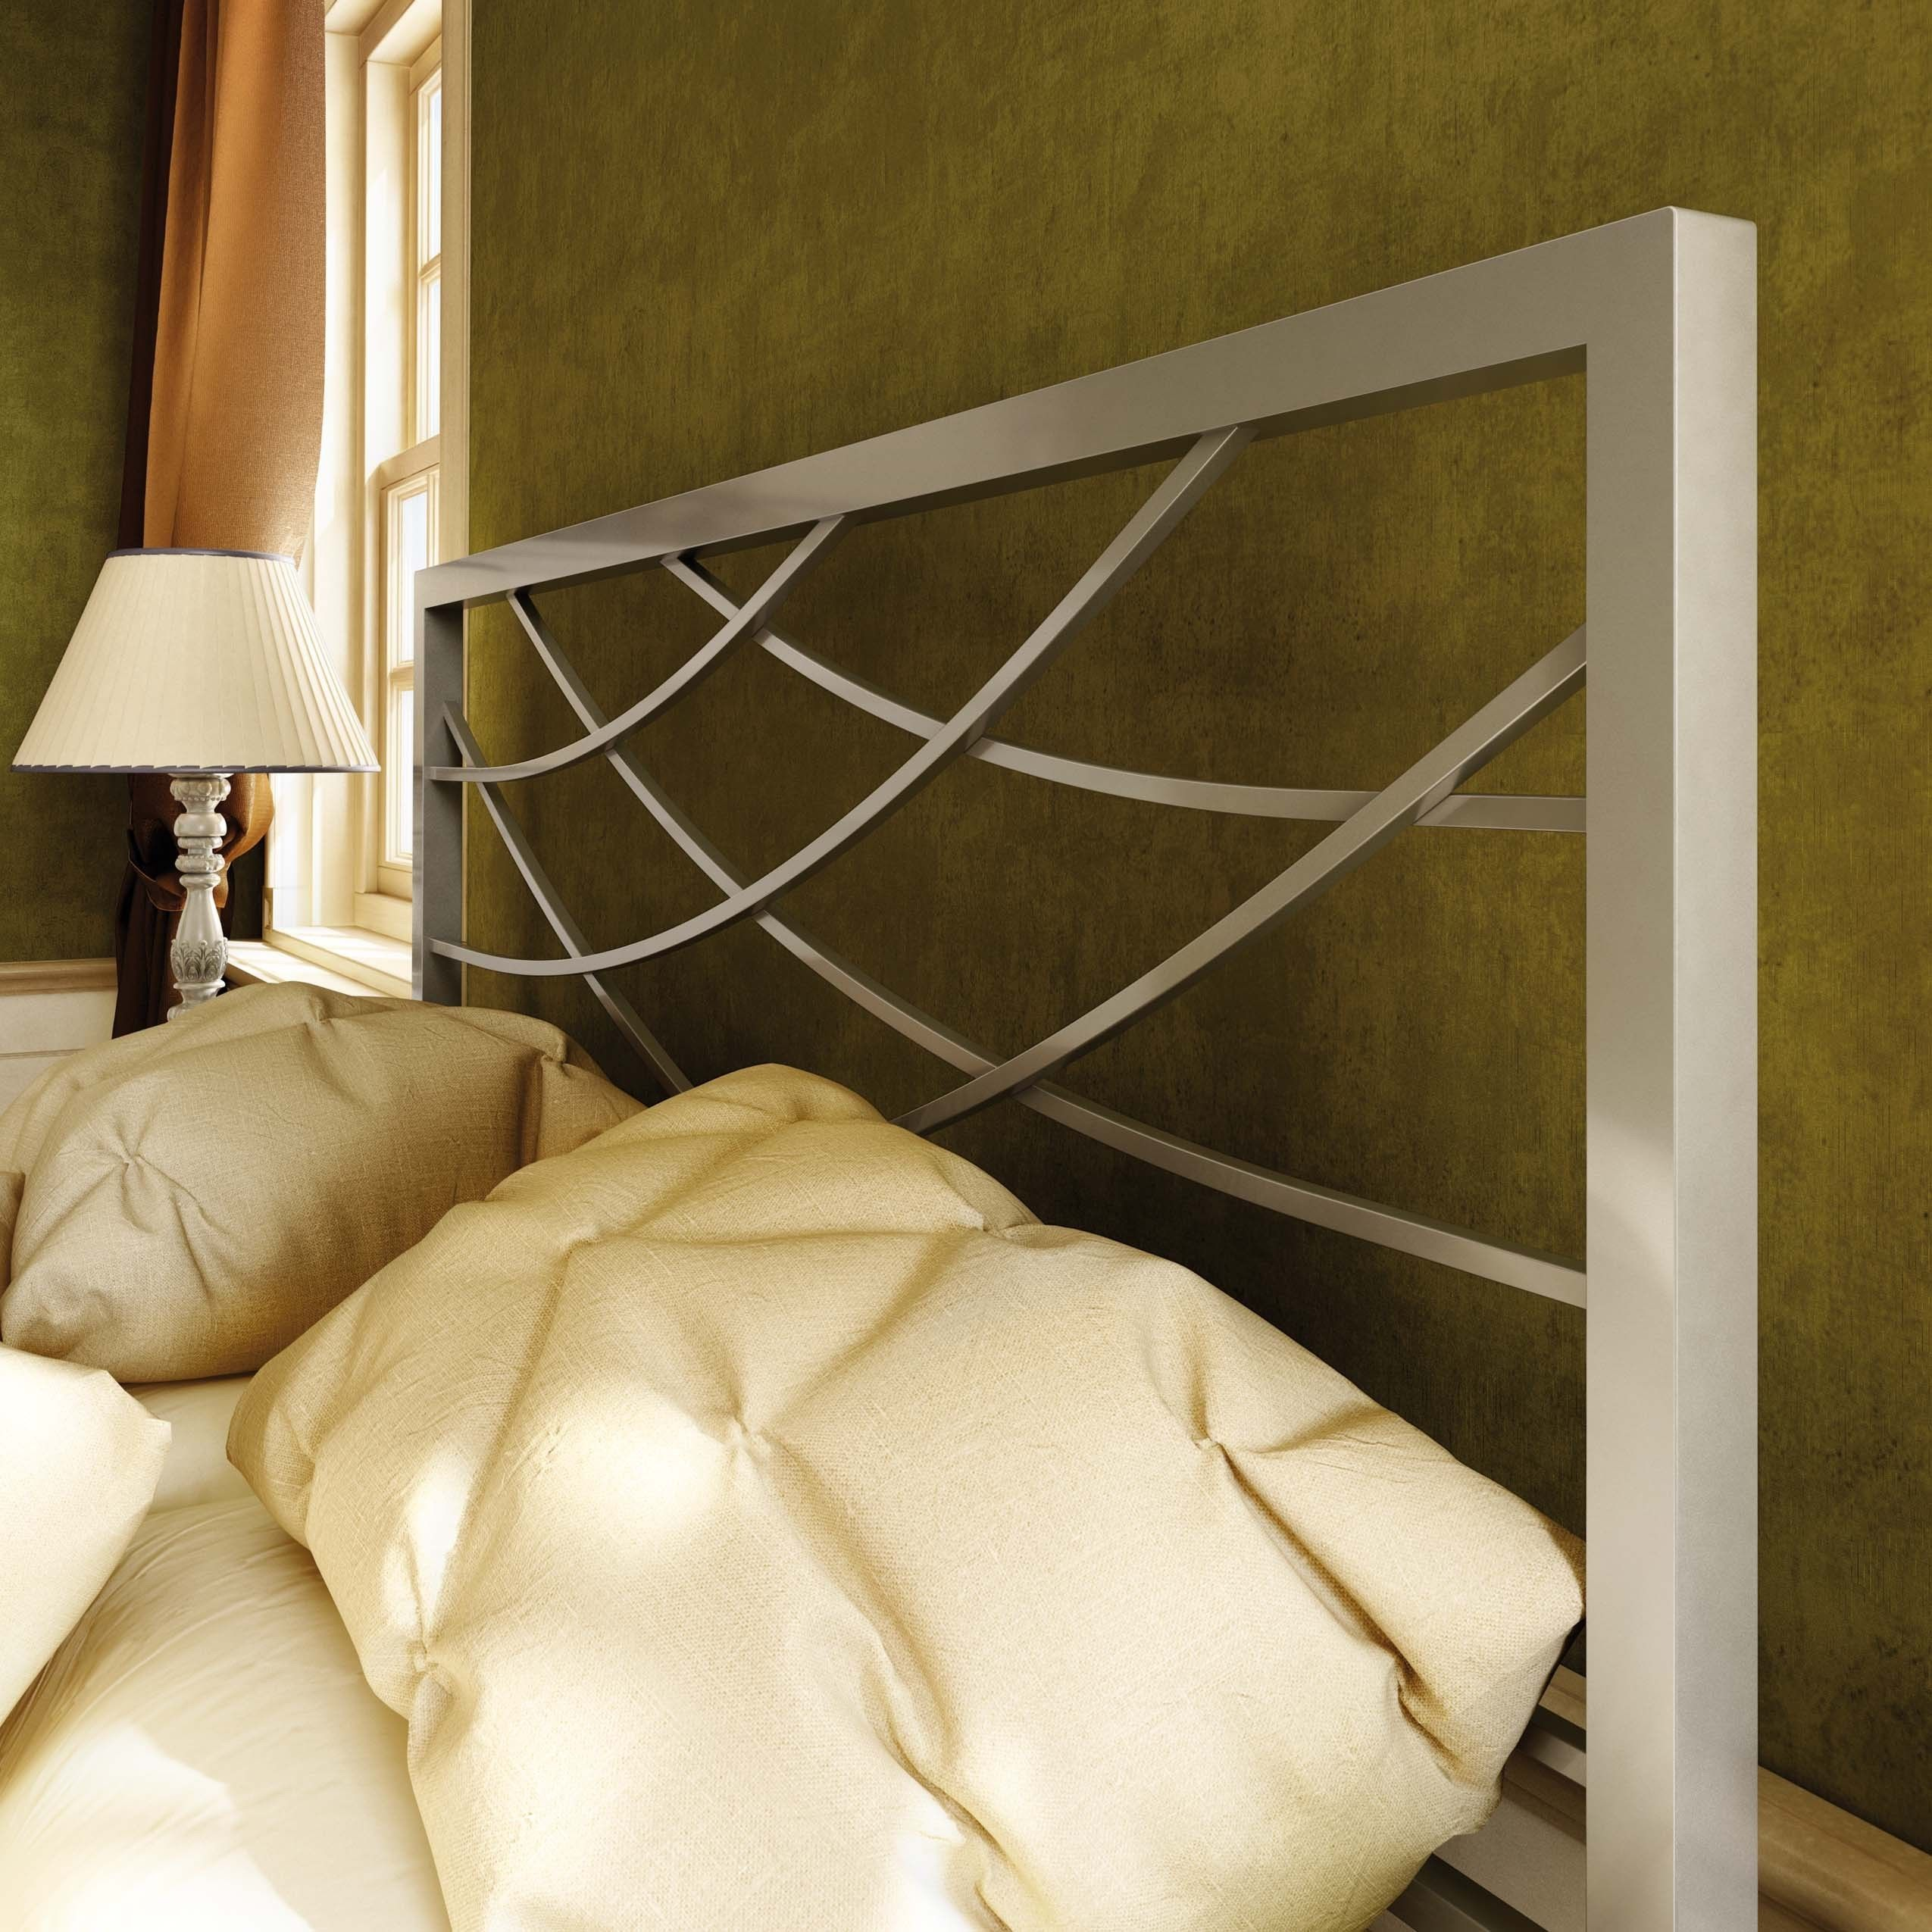 Create a refined and elegant appearance in your home with the Amisco Altess full-size headboard. This 54-inch metal headboard features top-quality solid steel in a design that morphs from motley harlequin to a regal diamond pattern.